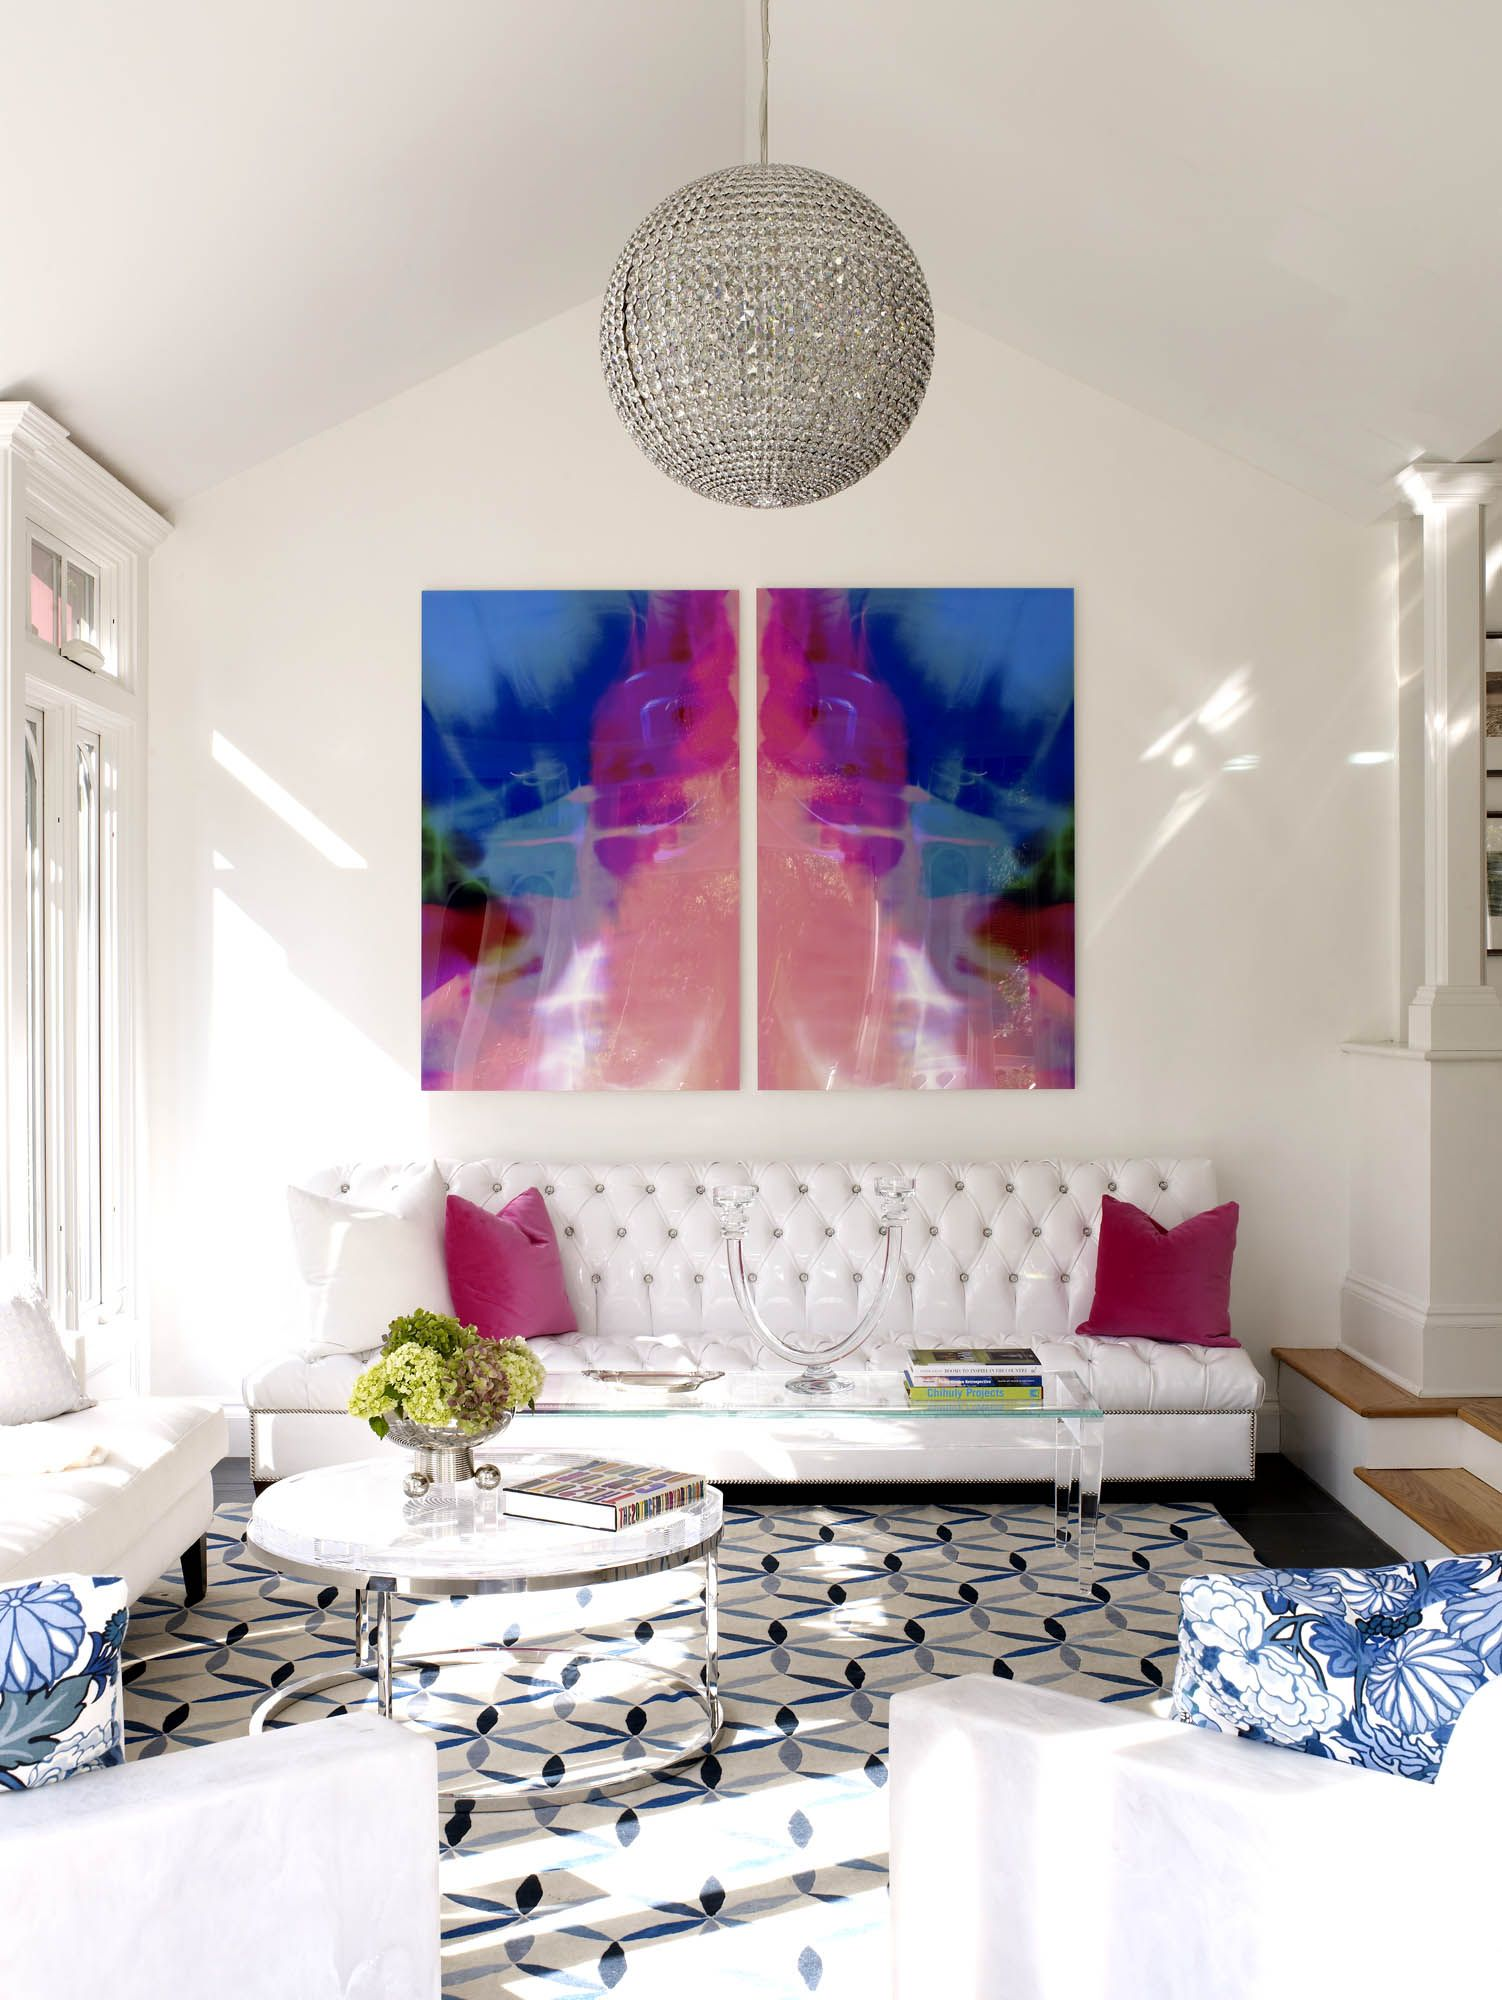 Lynne scalo designs interiordesign livingroom art